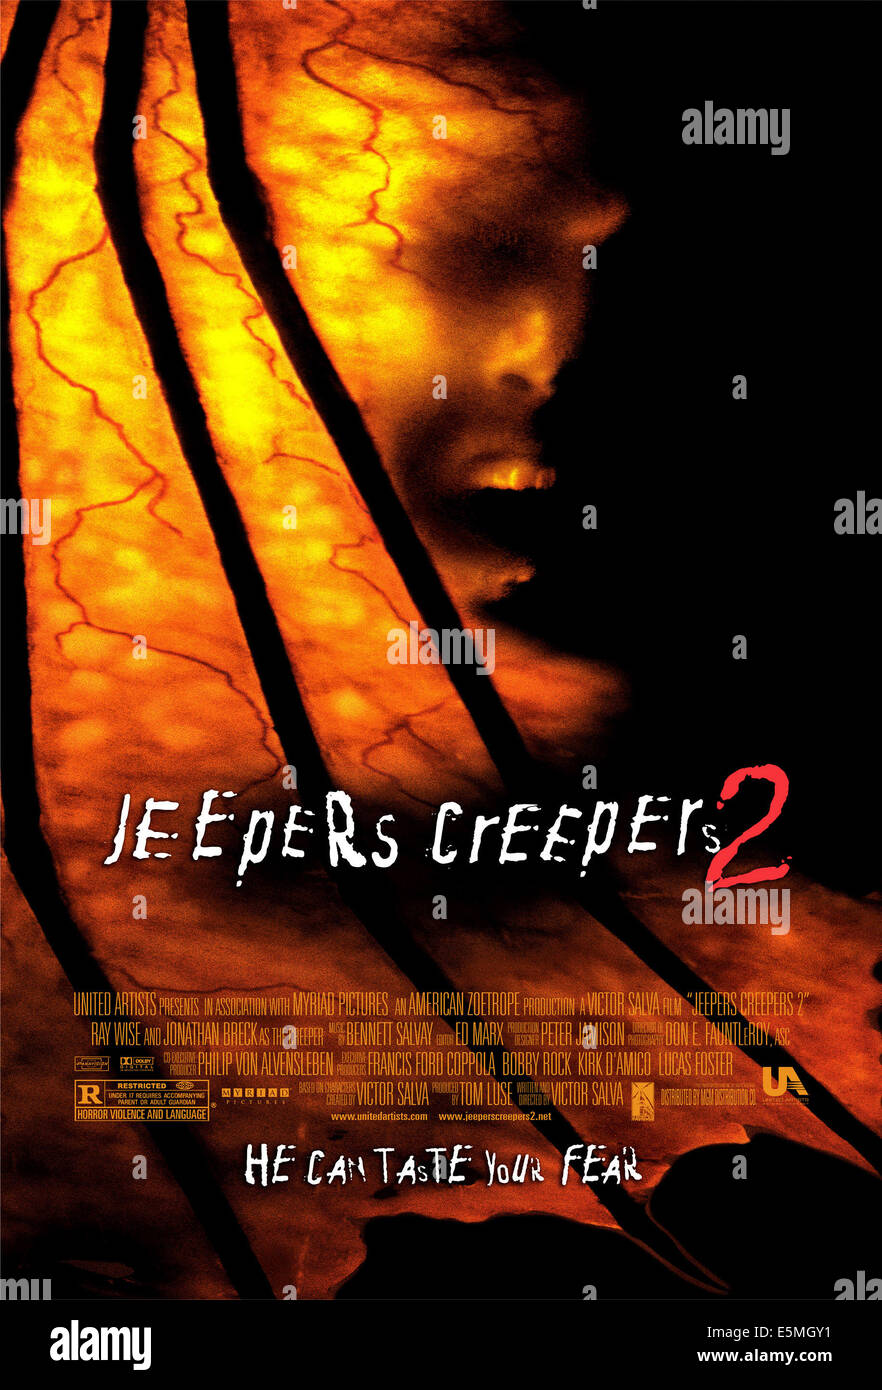 JEEPERS CREEPERS 2, 2003, (c) United Artists/courtesy Everett Collection - Stock Image